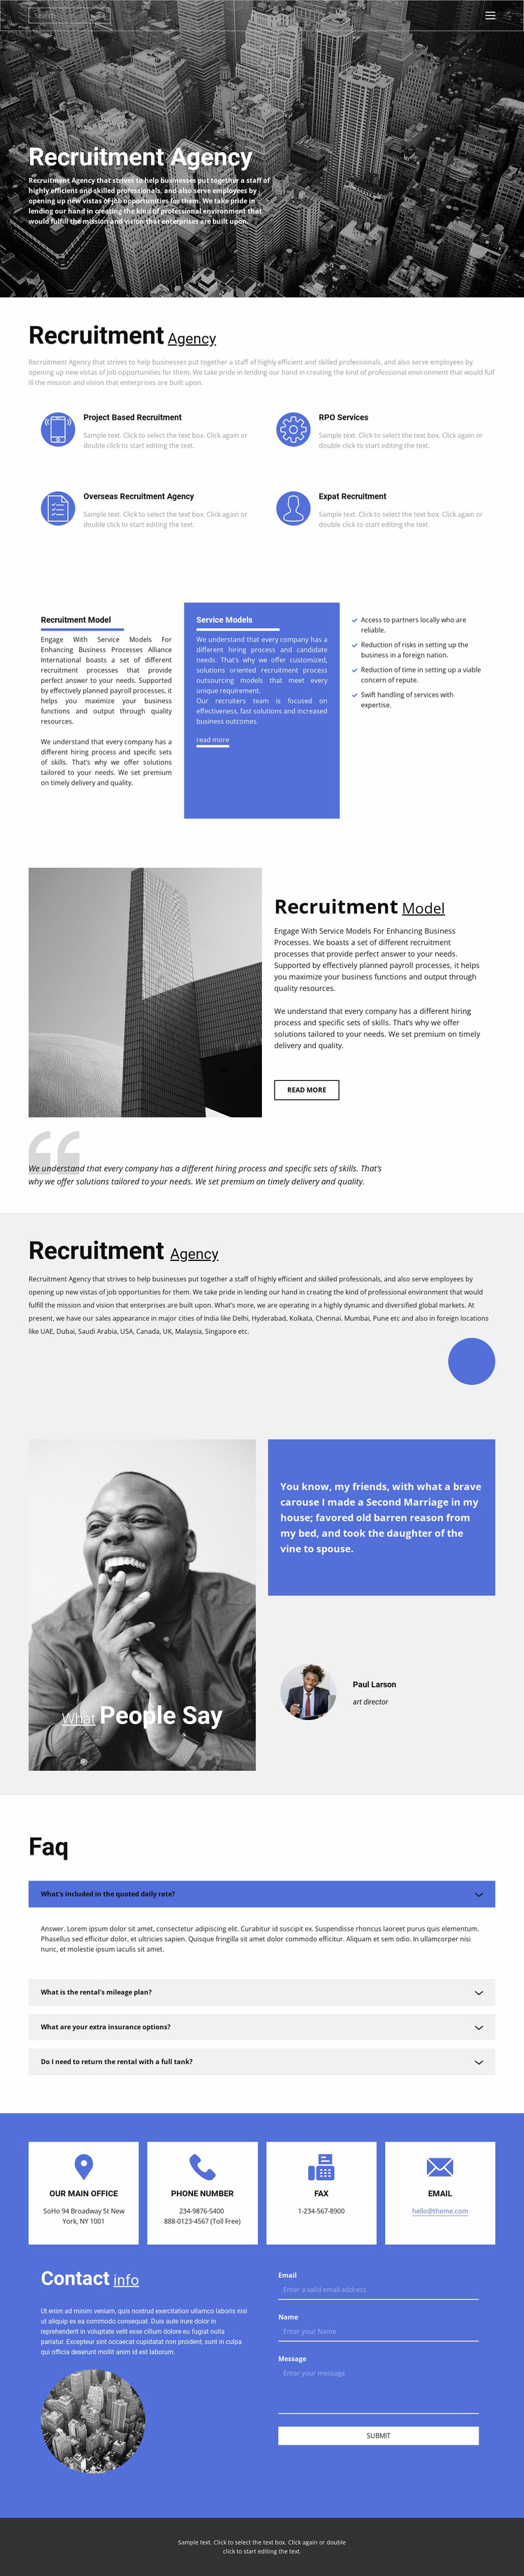 Recruiting agency with good experience Website Design